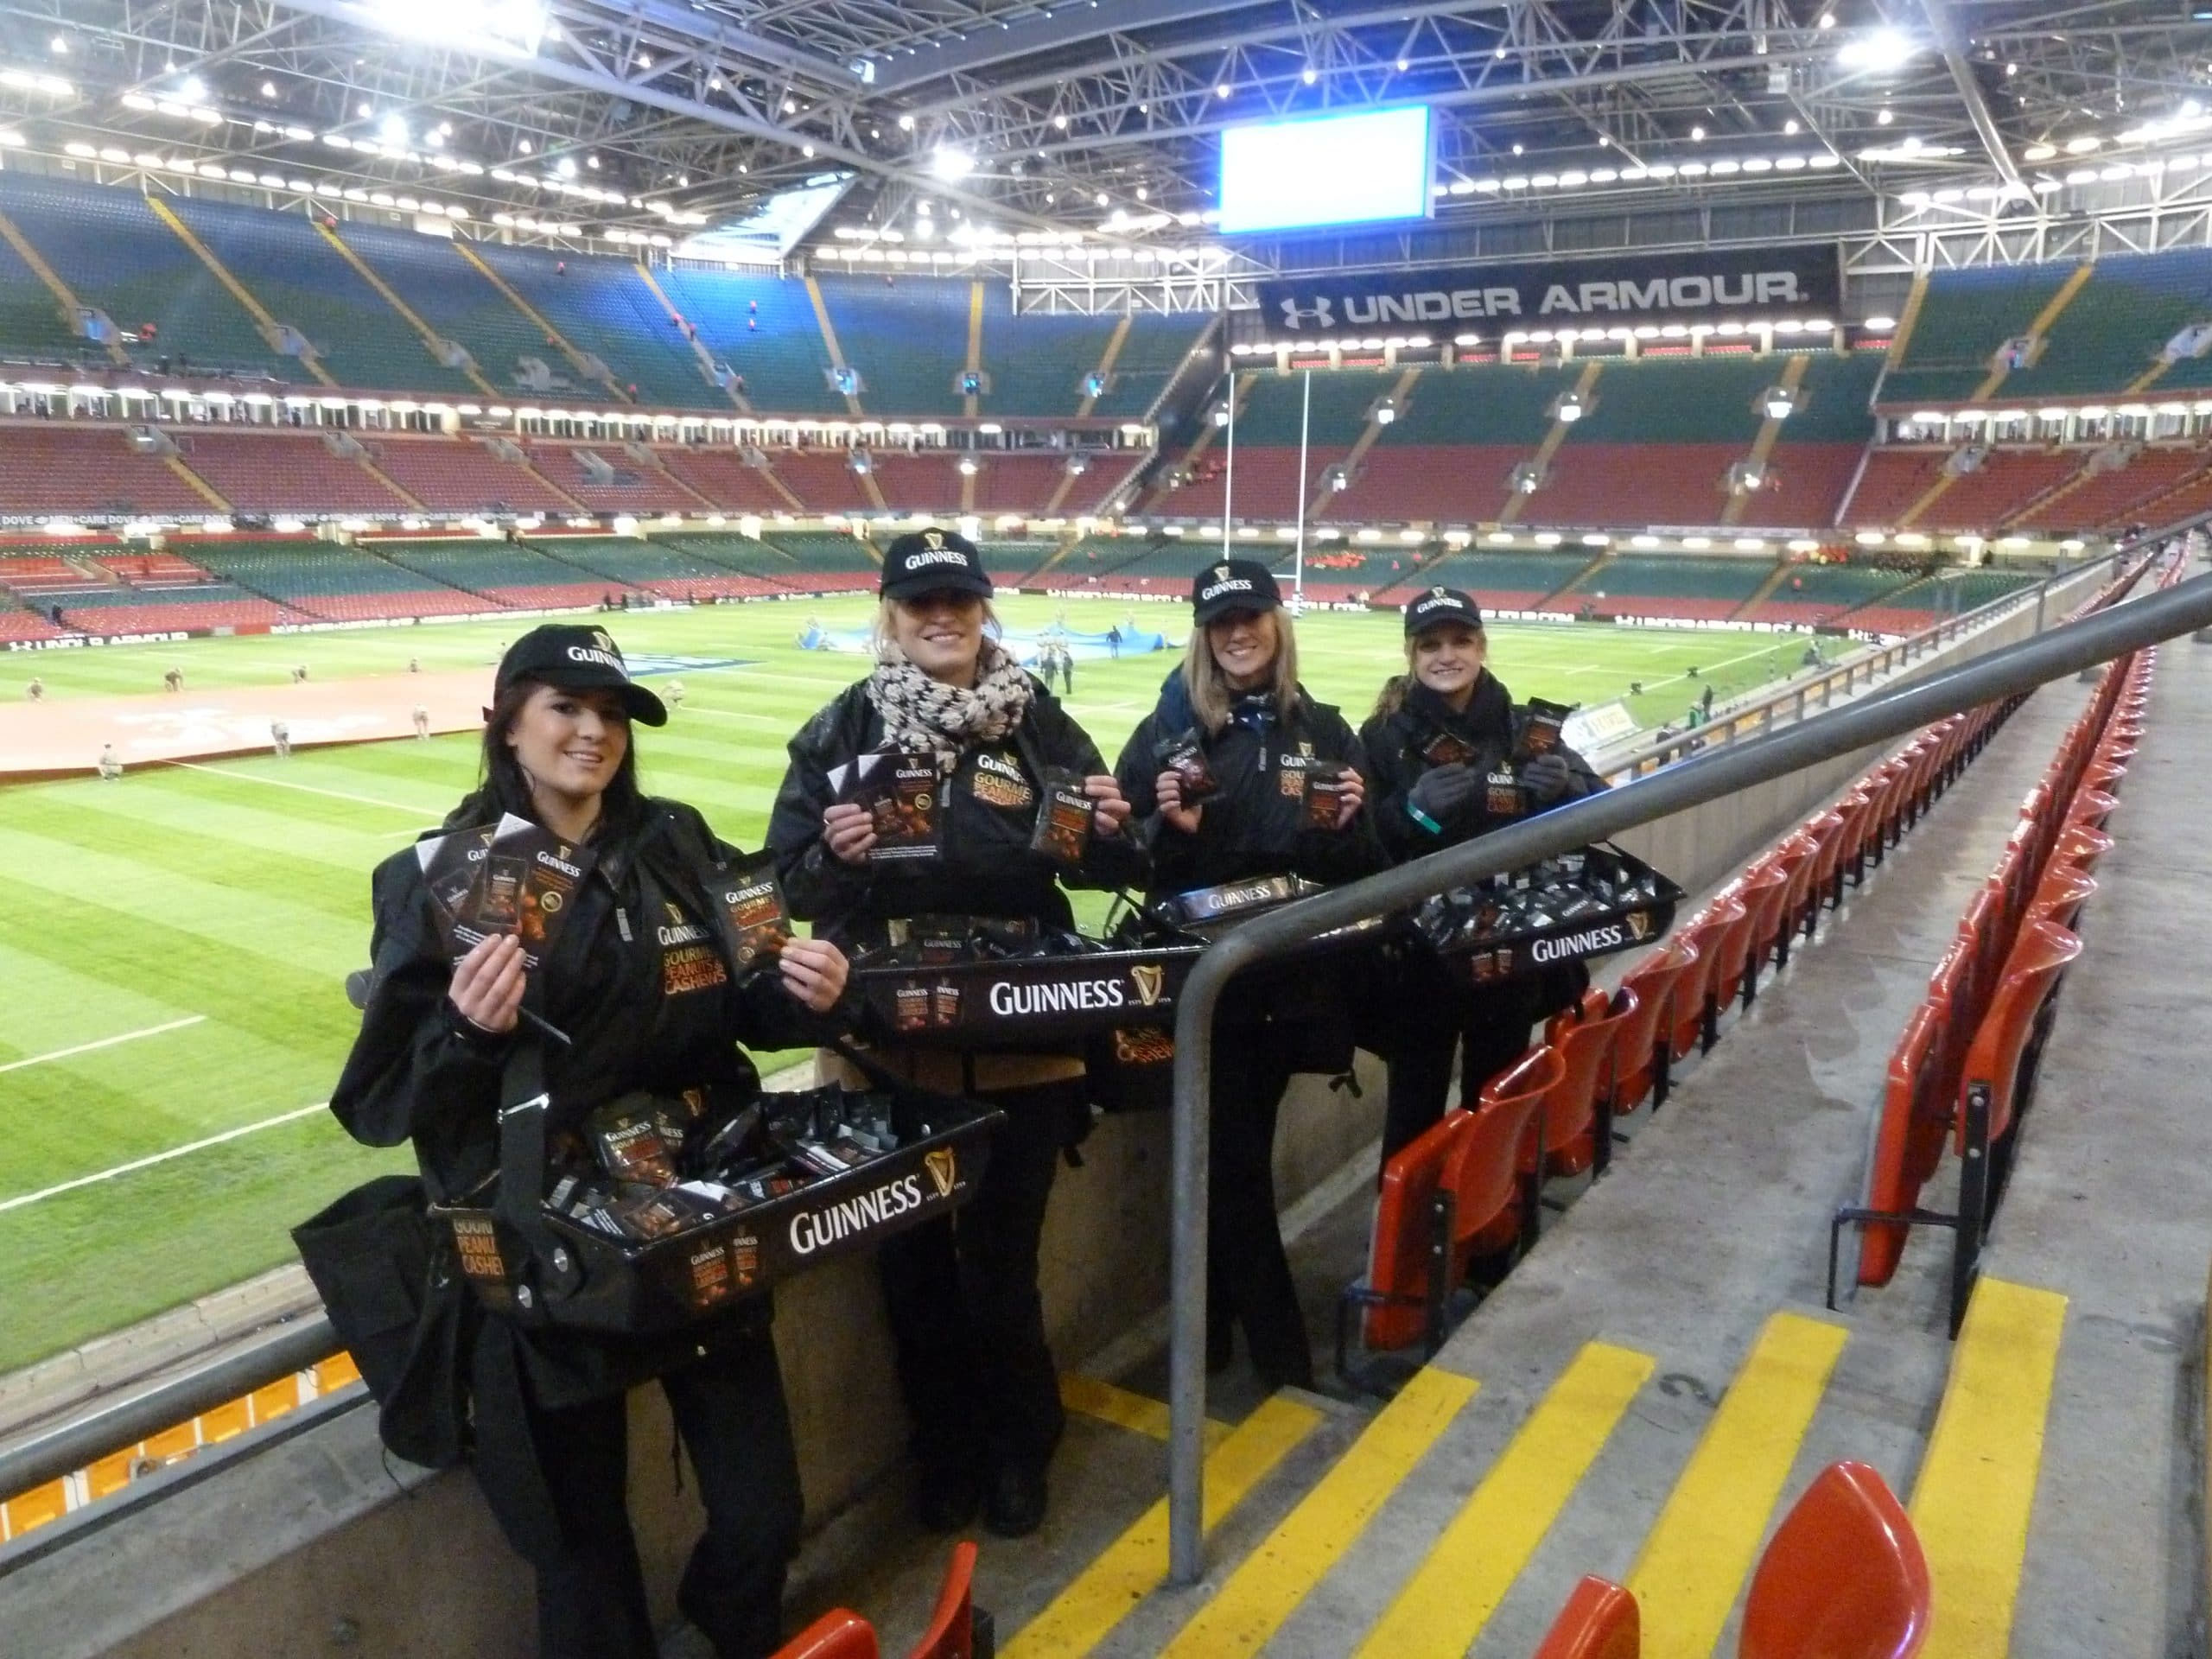 Experiential Marketing Product Sampling Guinness Nuts - Tactical Roaming Sampling Rugby Sports Events Fixtures